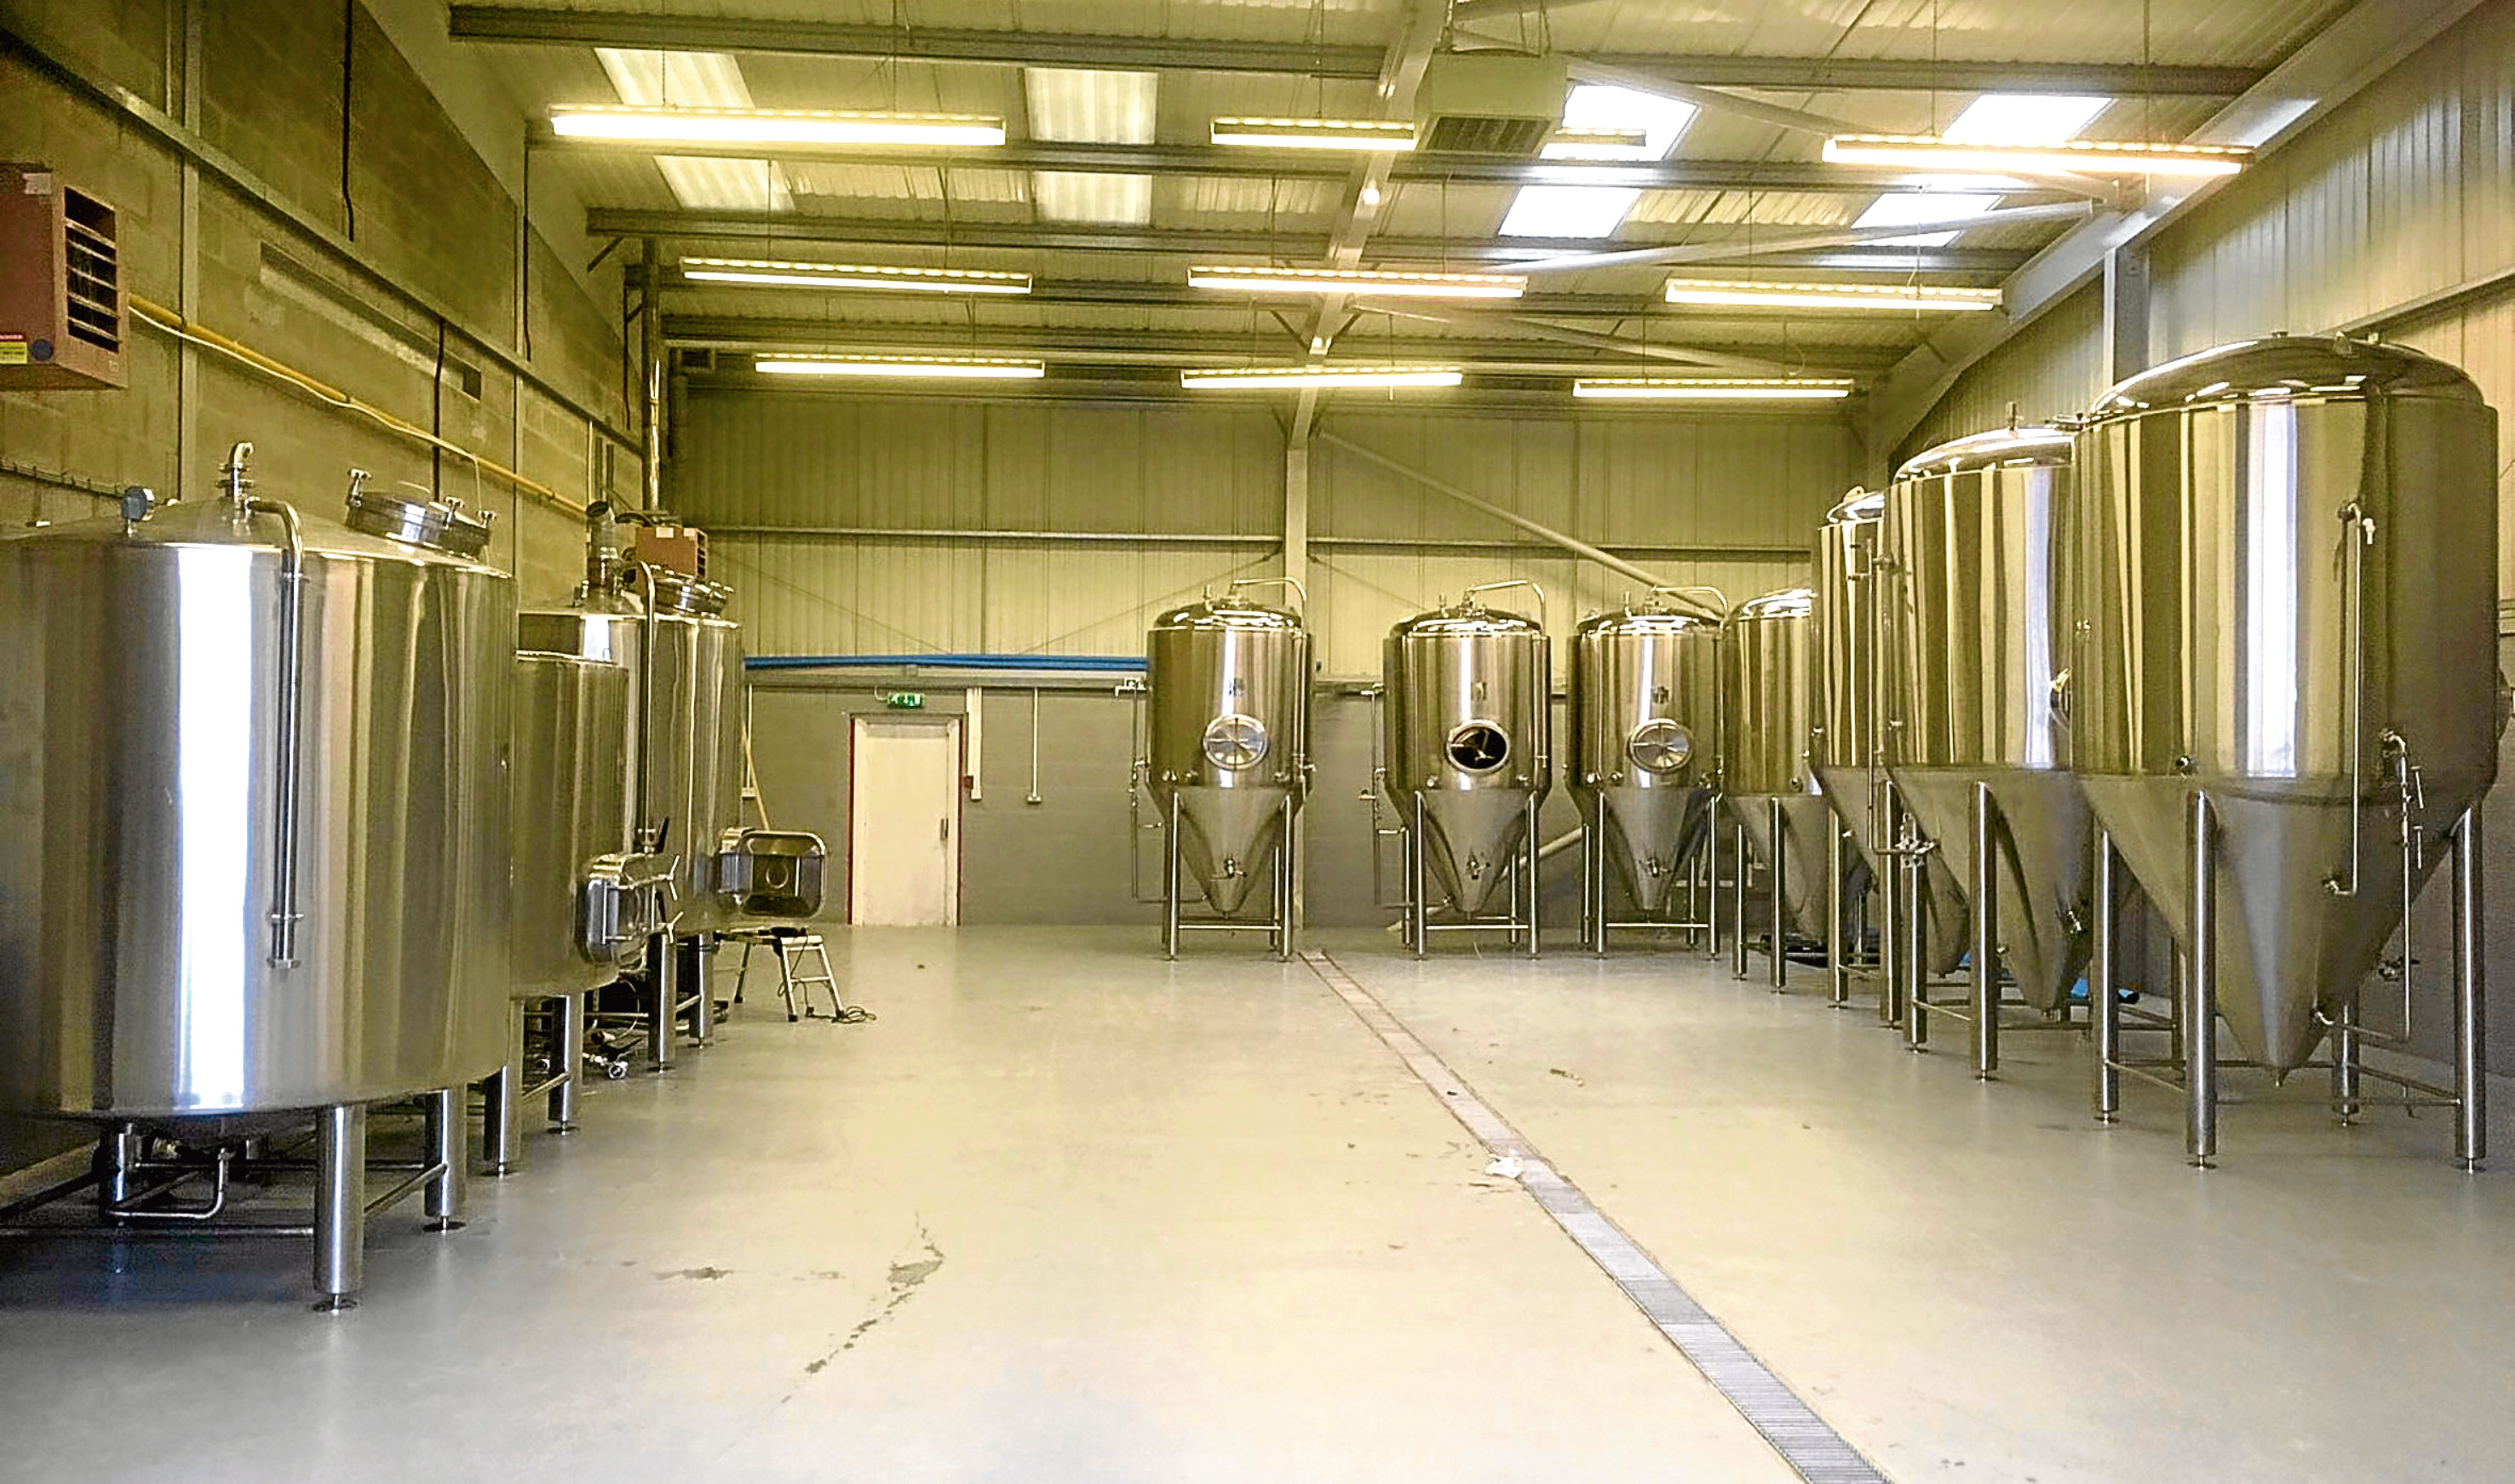 The new Fierce Beer brewery in Dyce is taking shape.